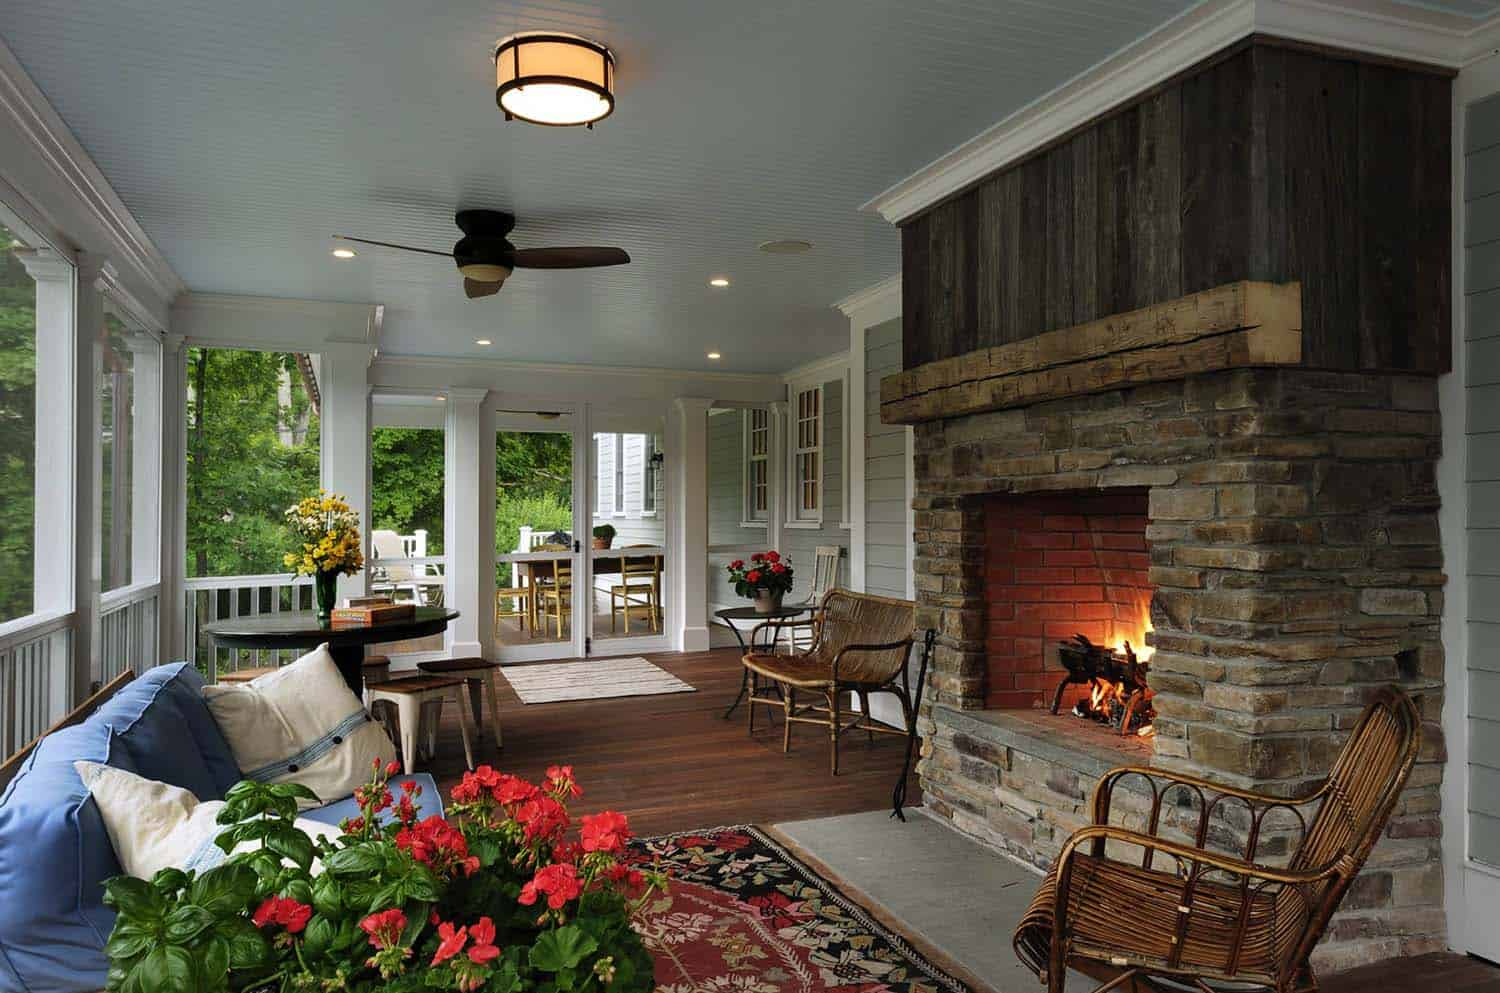 fireplace tongue to ideas construction screen screened covered a best pertaining porch rustic in groove with and centerpiece designs